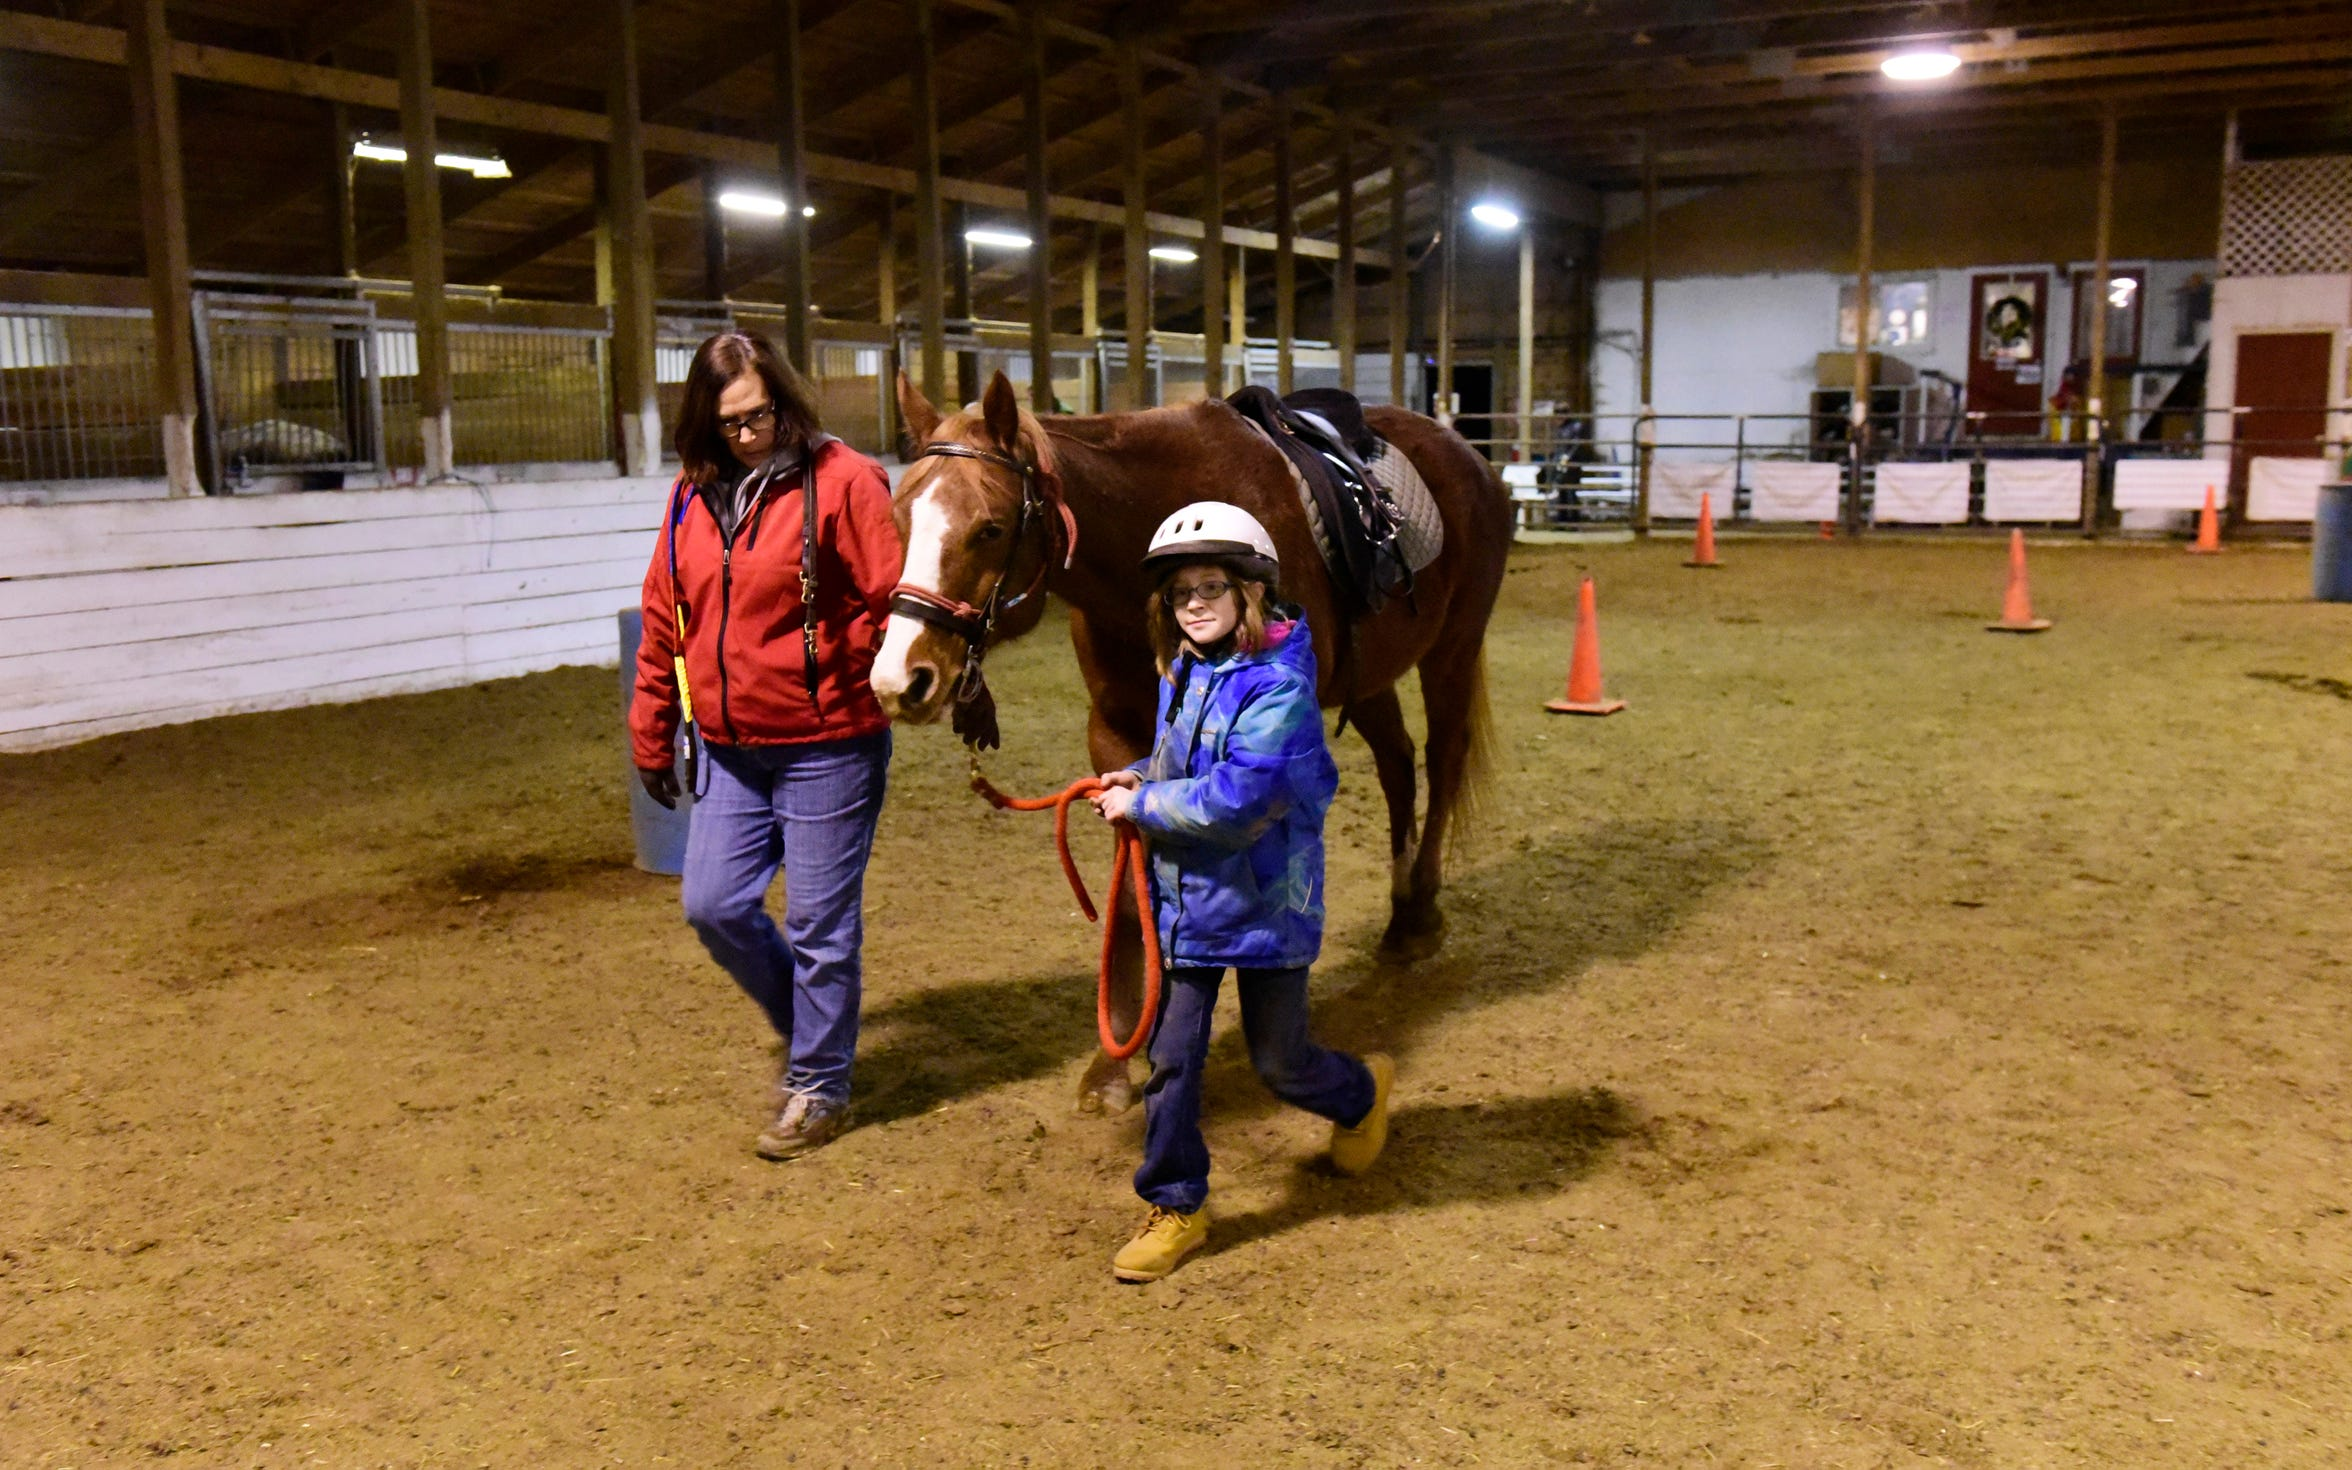 Charlie Hilton, 10, of Port Clinton leads Rudy, a 15-year-old gelding quarter horse with volunteer leader Sue Hoffman. Her father is serving in the U.S. Army and had been deployed overseas for the past year.